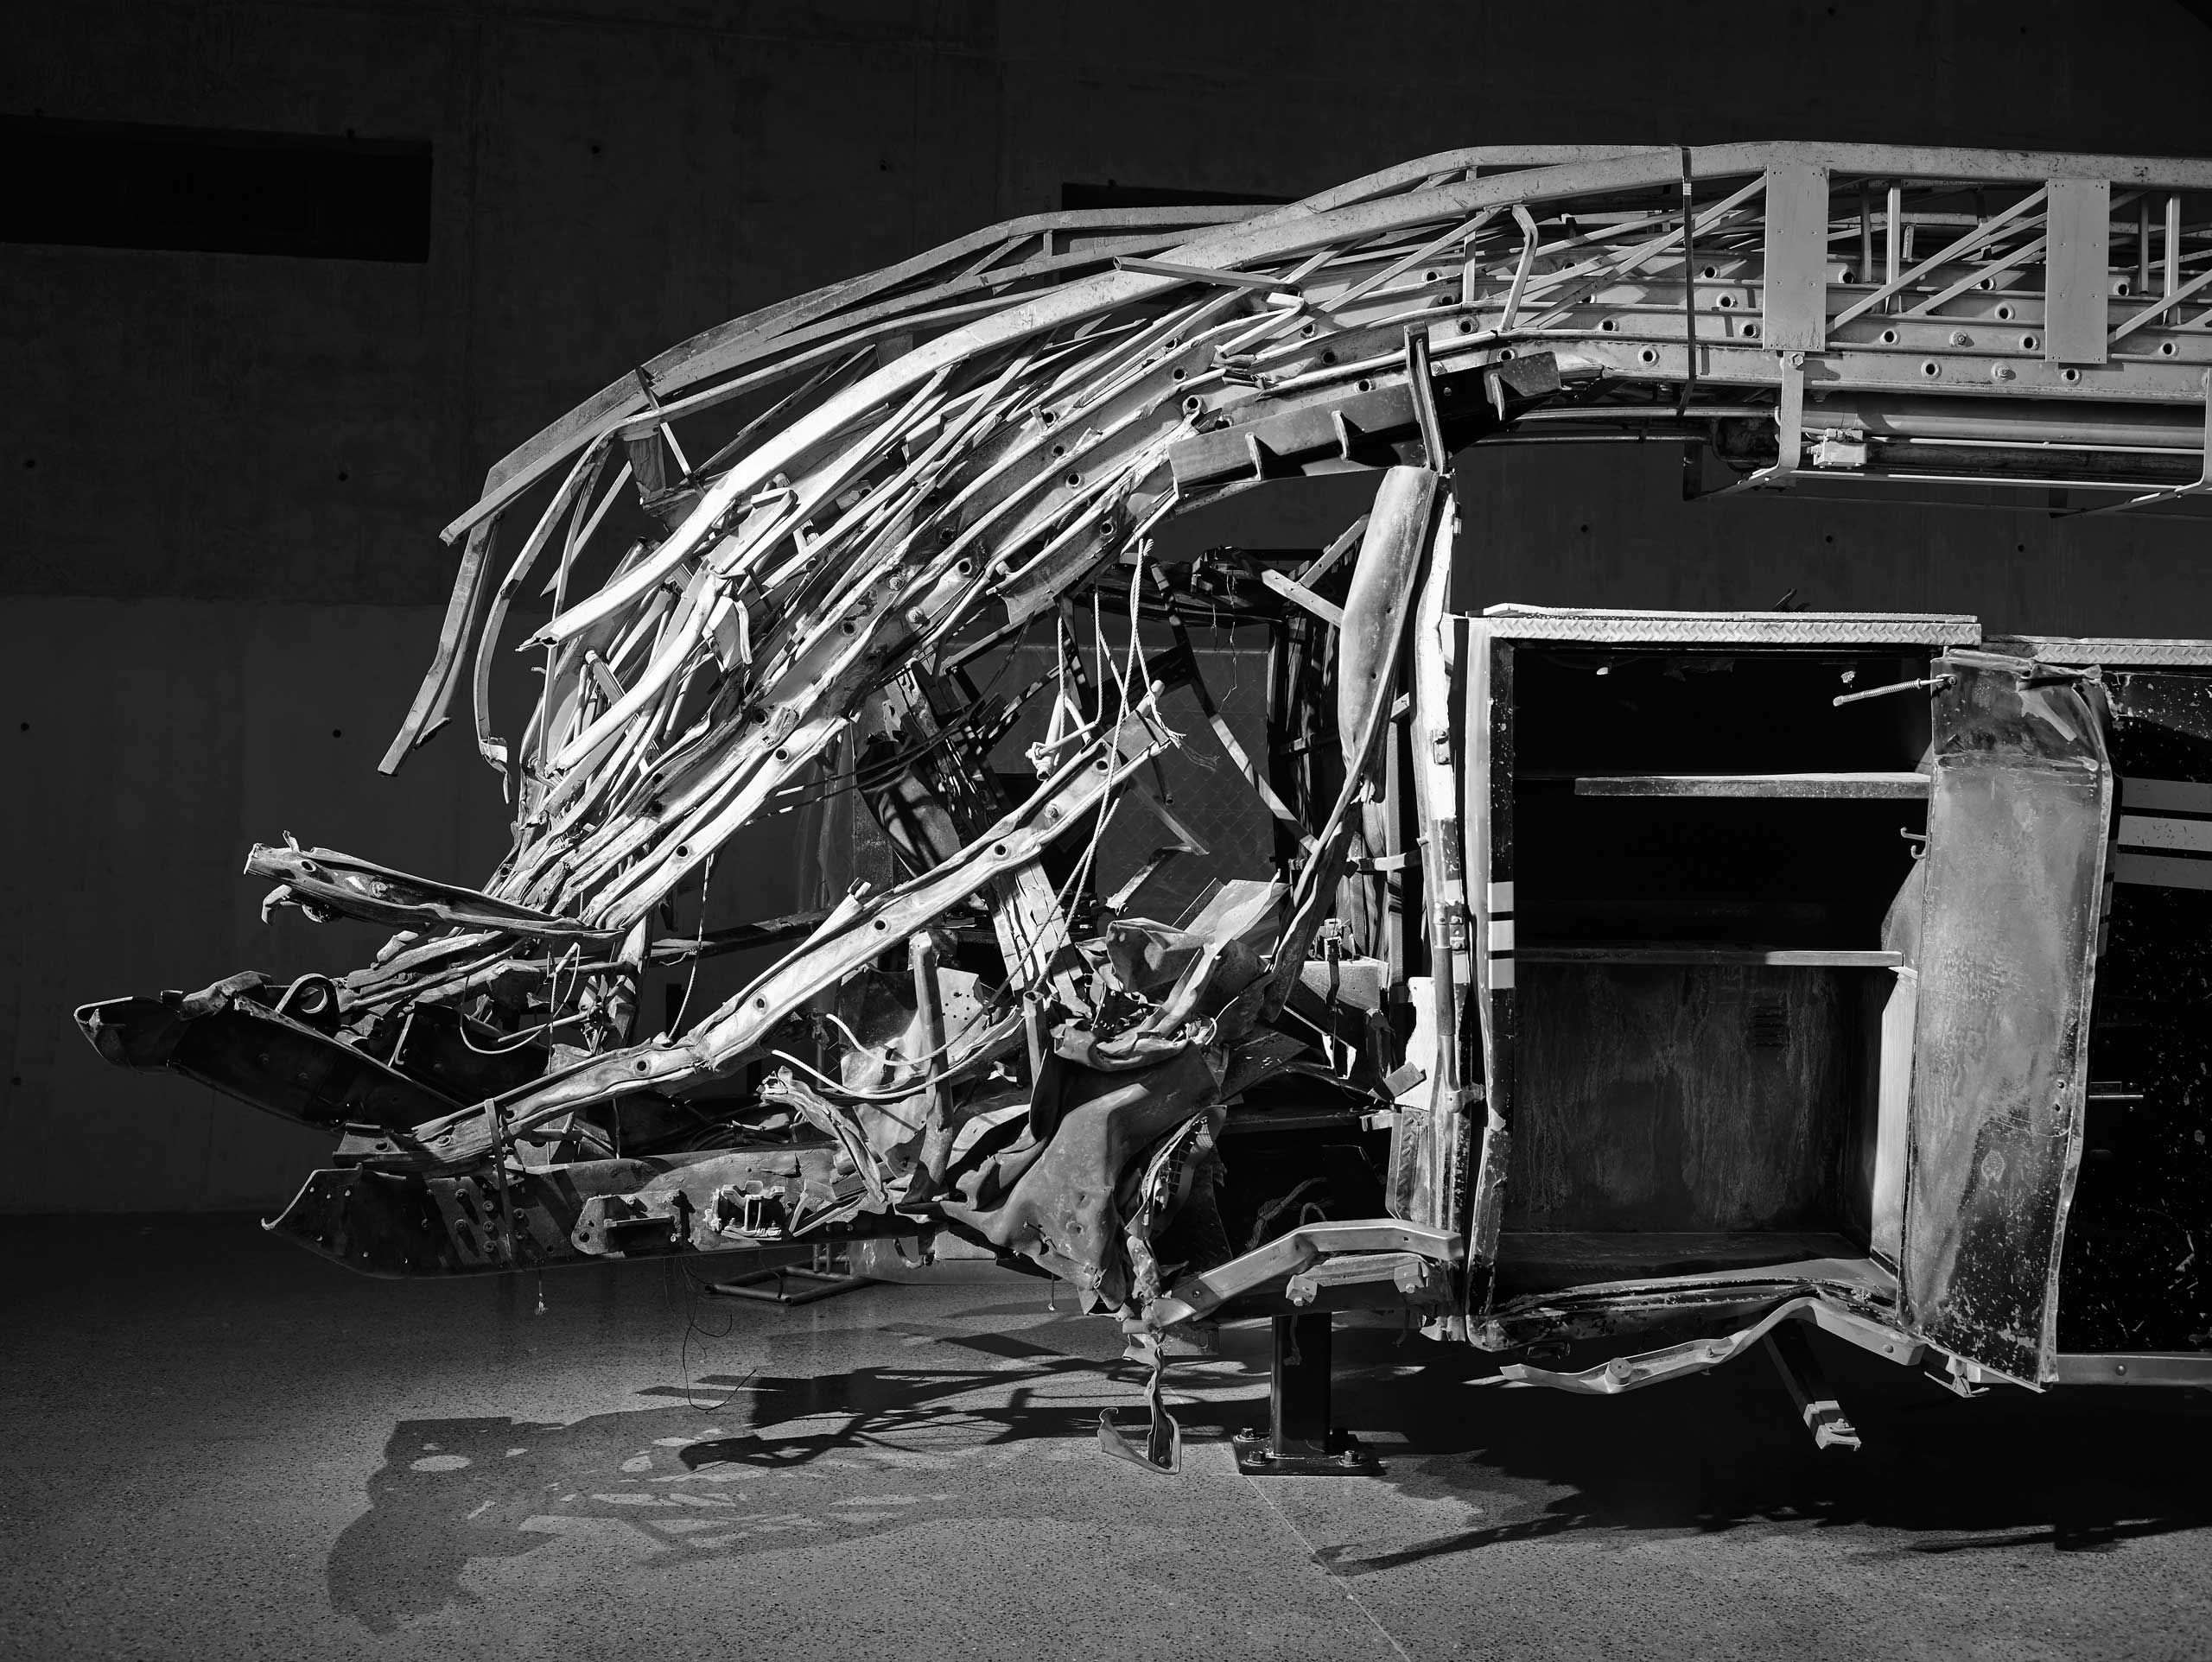 The crushed fire truck of Ladder Company 3 at the 9/11 Memorial Museum, May 2, 2014.